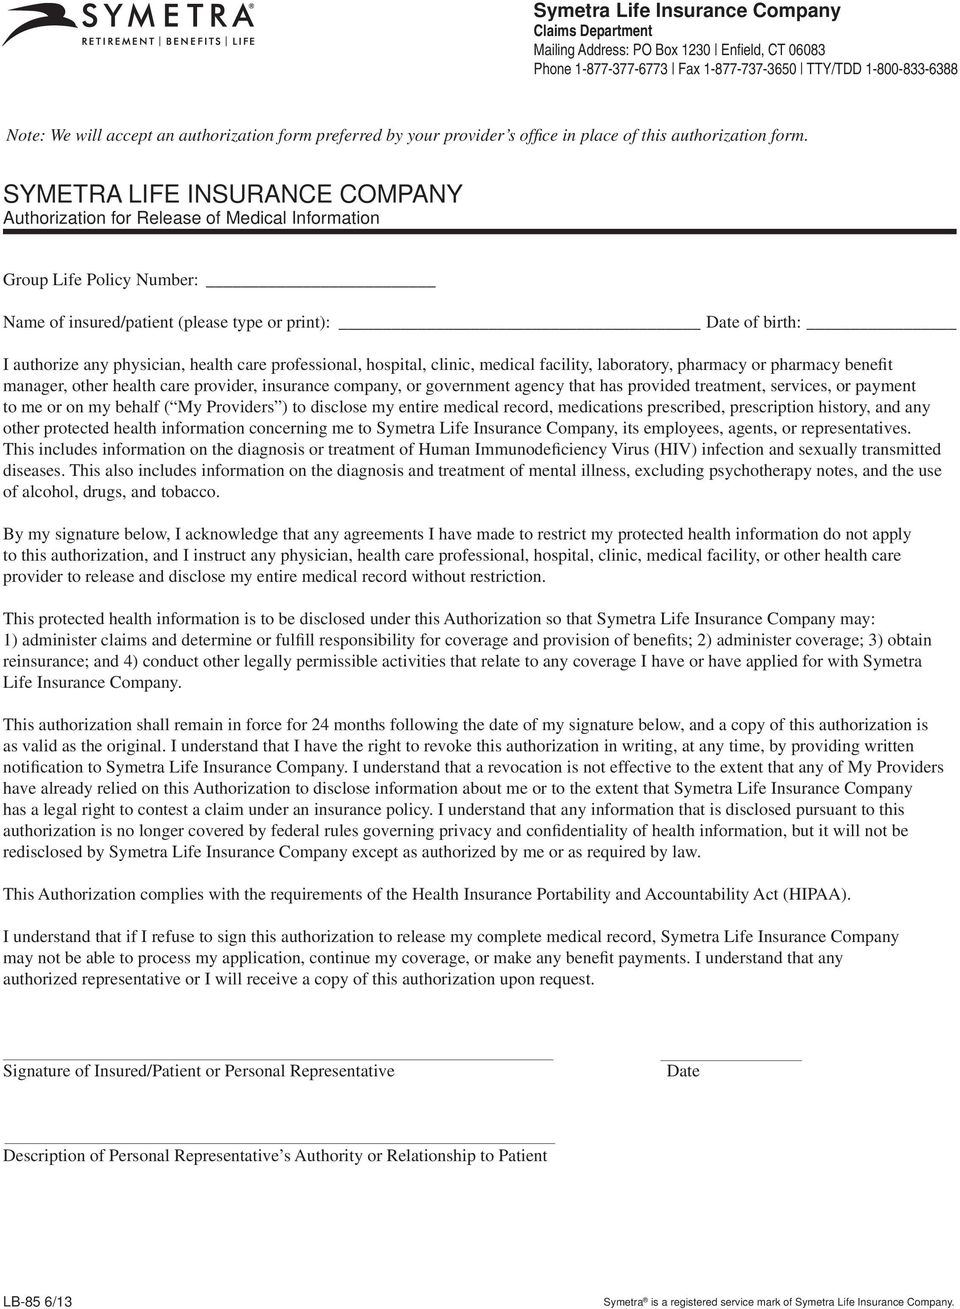 SYMETRA LIFE INSURANCE COMPANY Authorization for Release of Medical Information Group Life Policy Number: Name of insured/patient (please type or print): Date of birth: I authorize any physician,